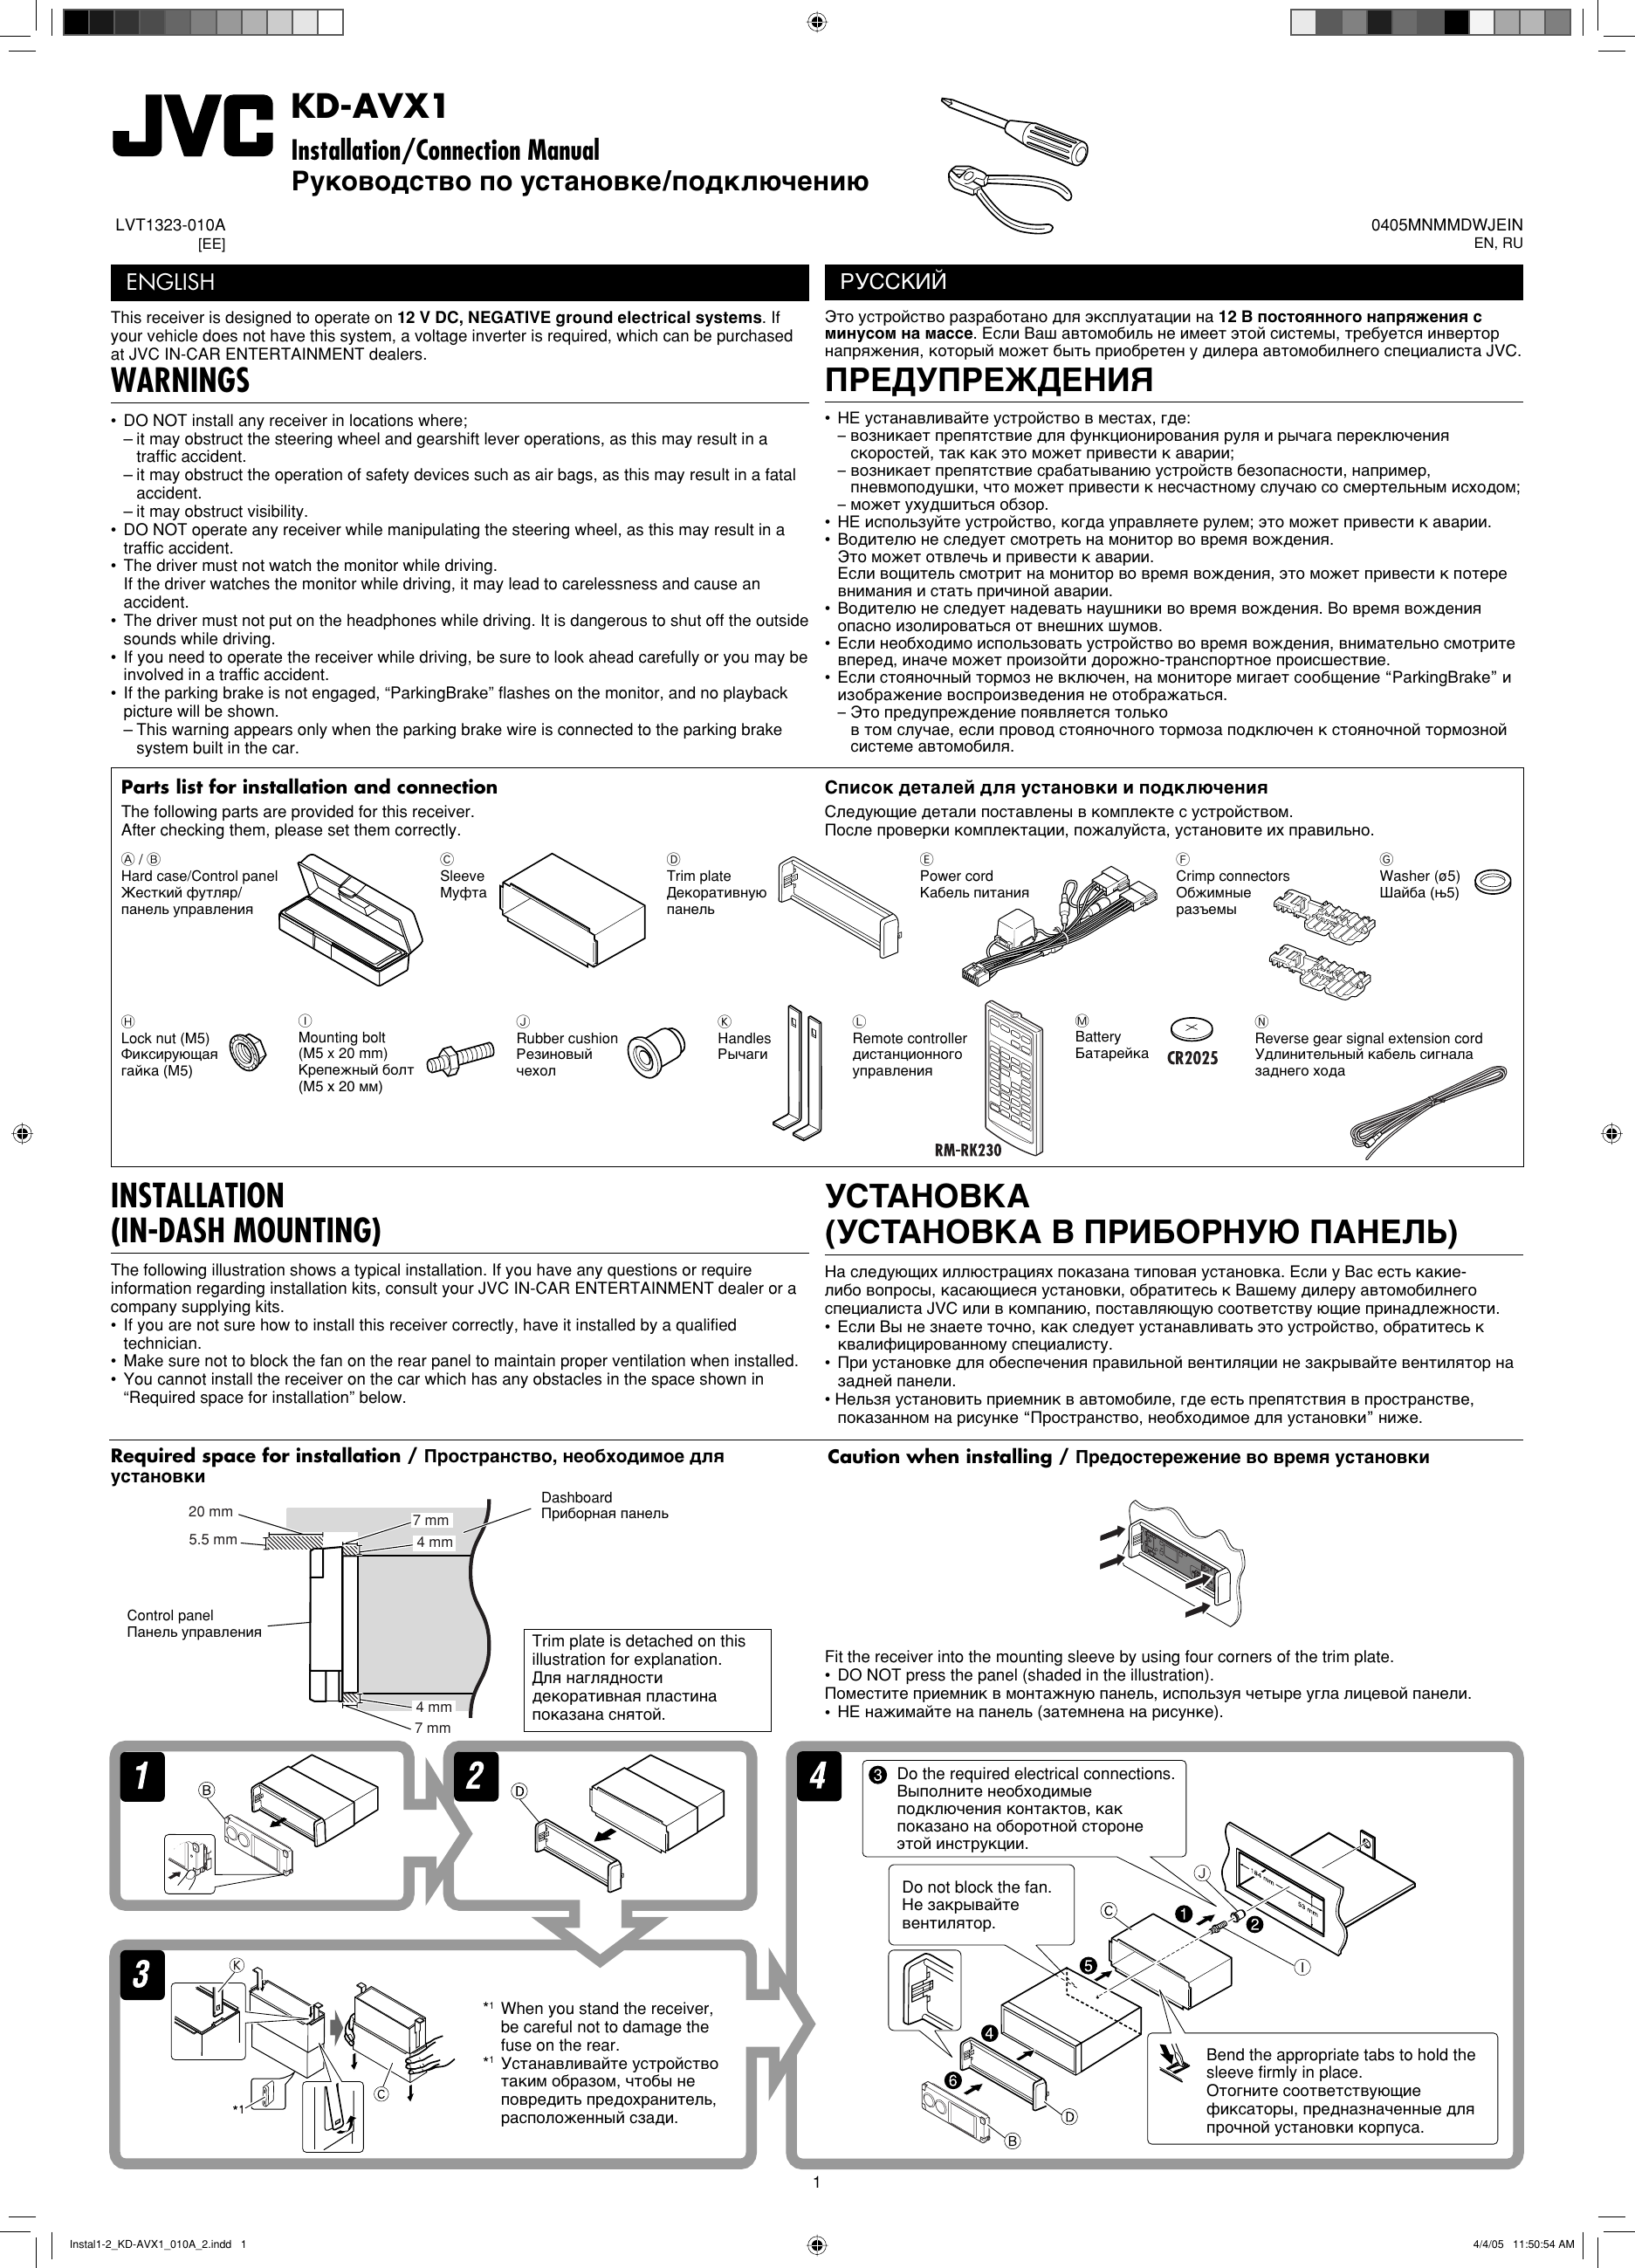 Kenwood Kvt 516 Wiring Diagram Great Design Of Harness Amazing Jvc Kd R200 Composition Radios Kdc 215s Accessories